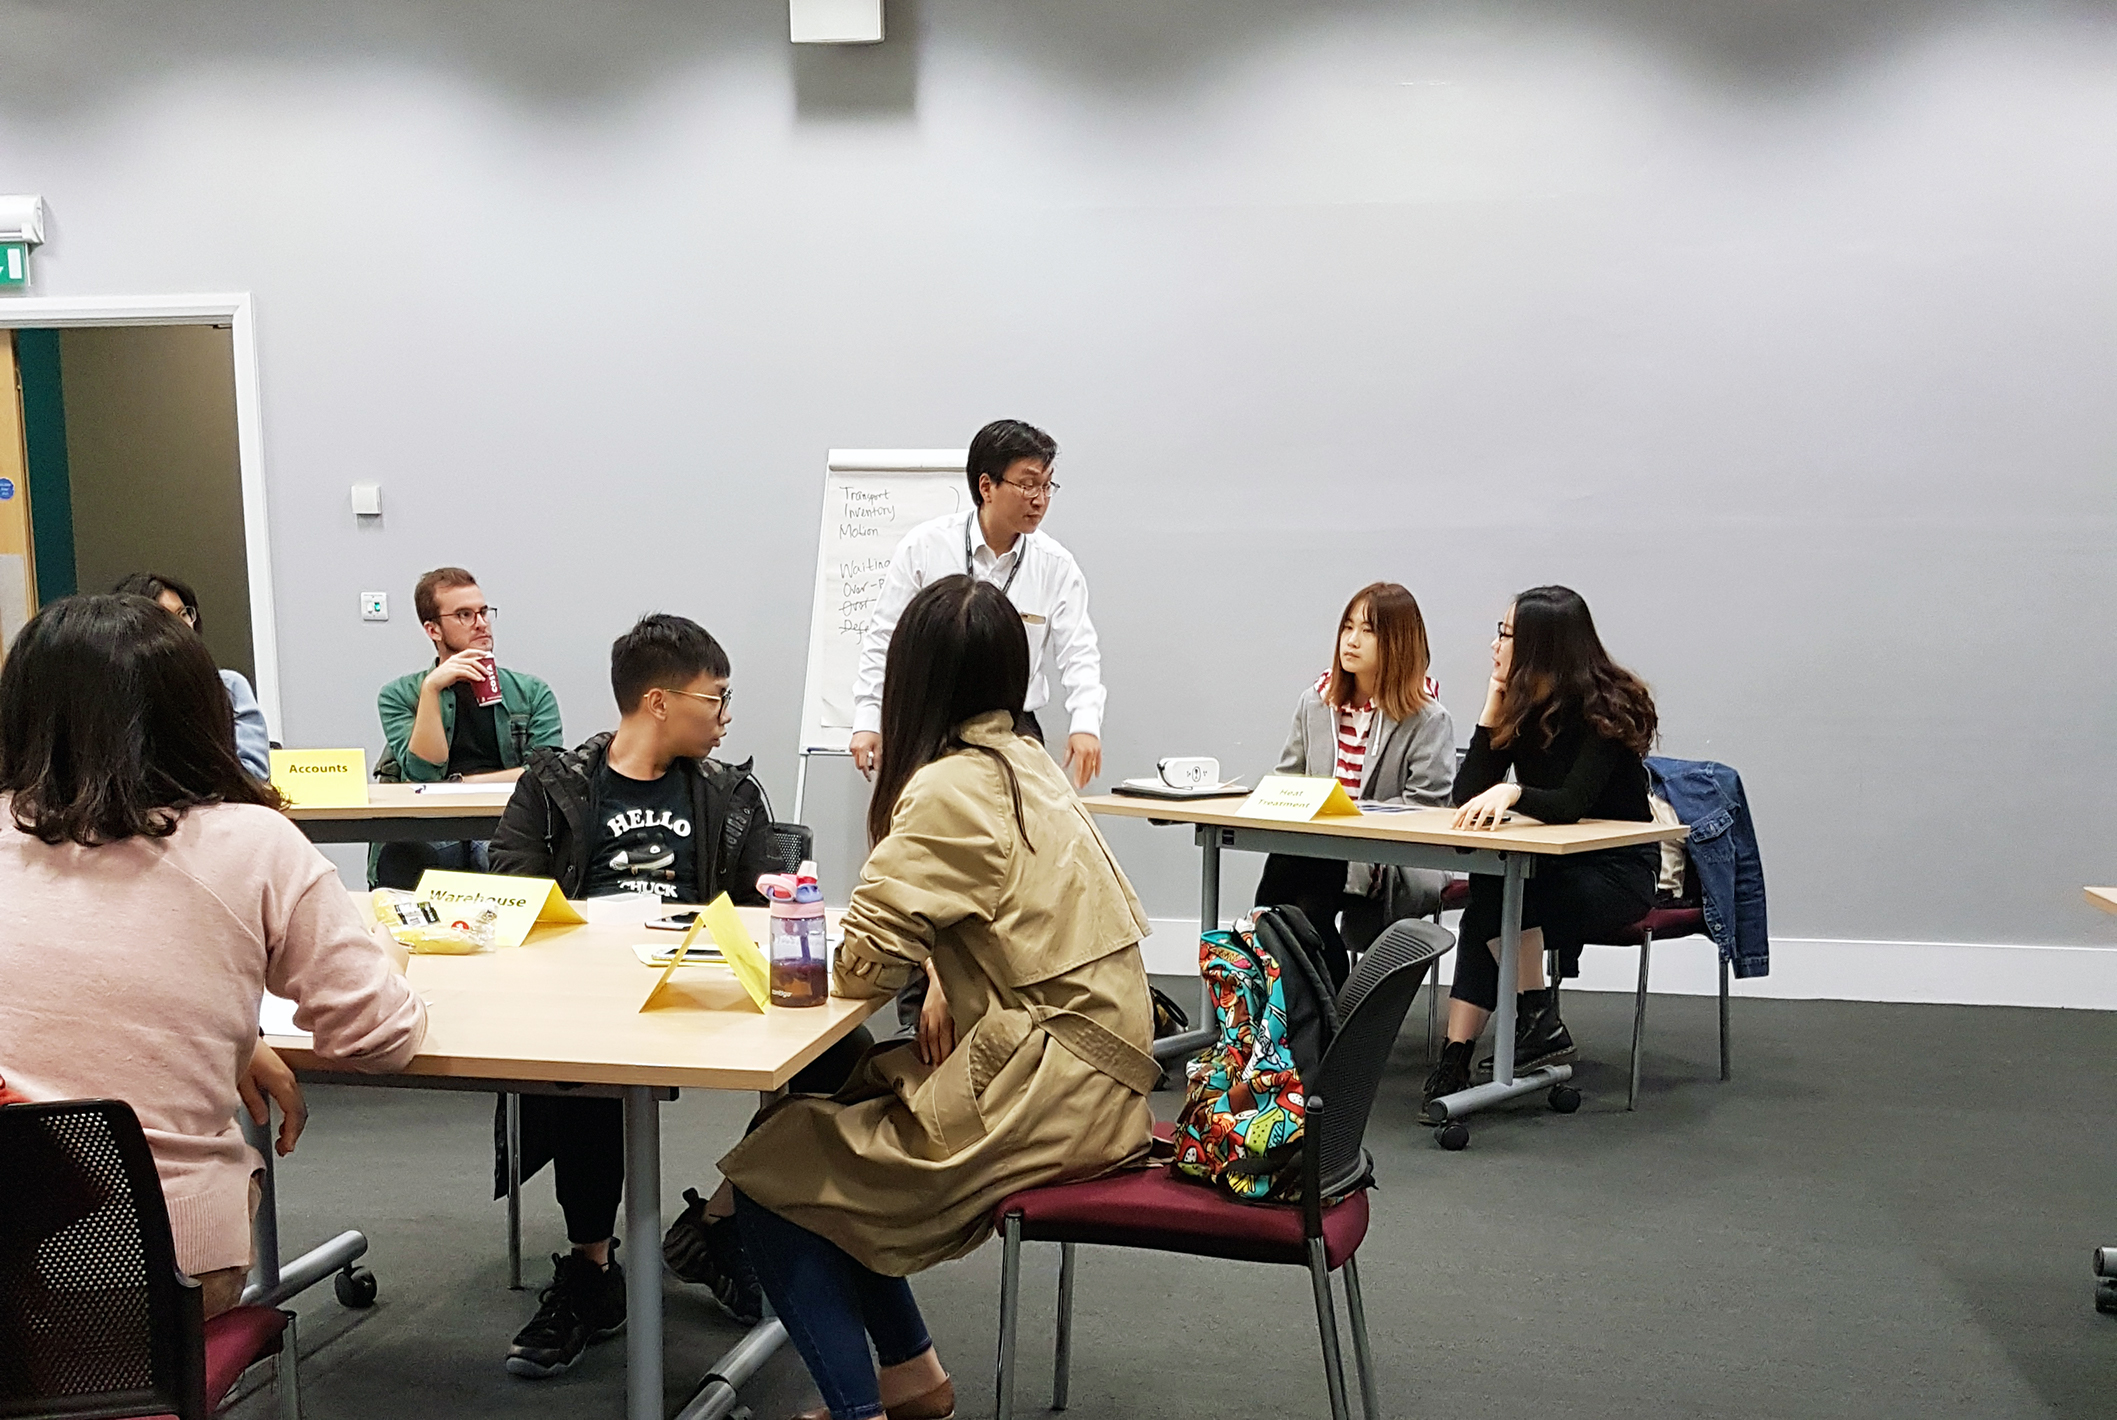 Just In Time Game, Logistics and Supply Chain MSc students at Cranfield School of Management